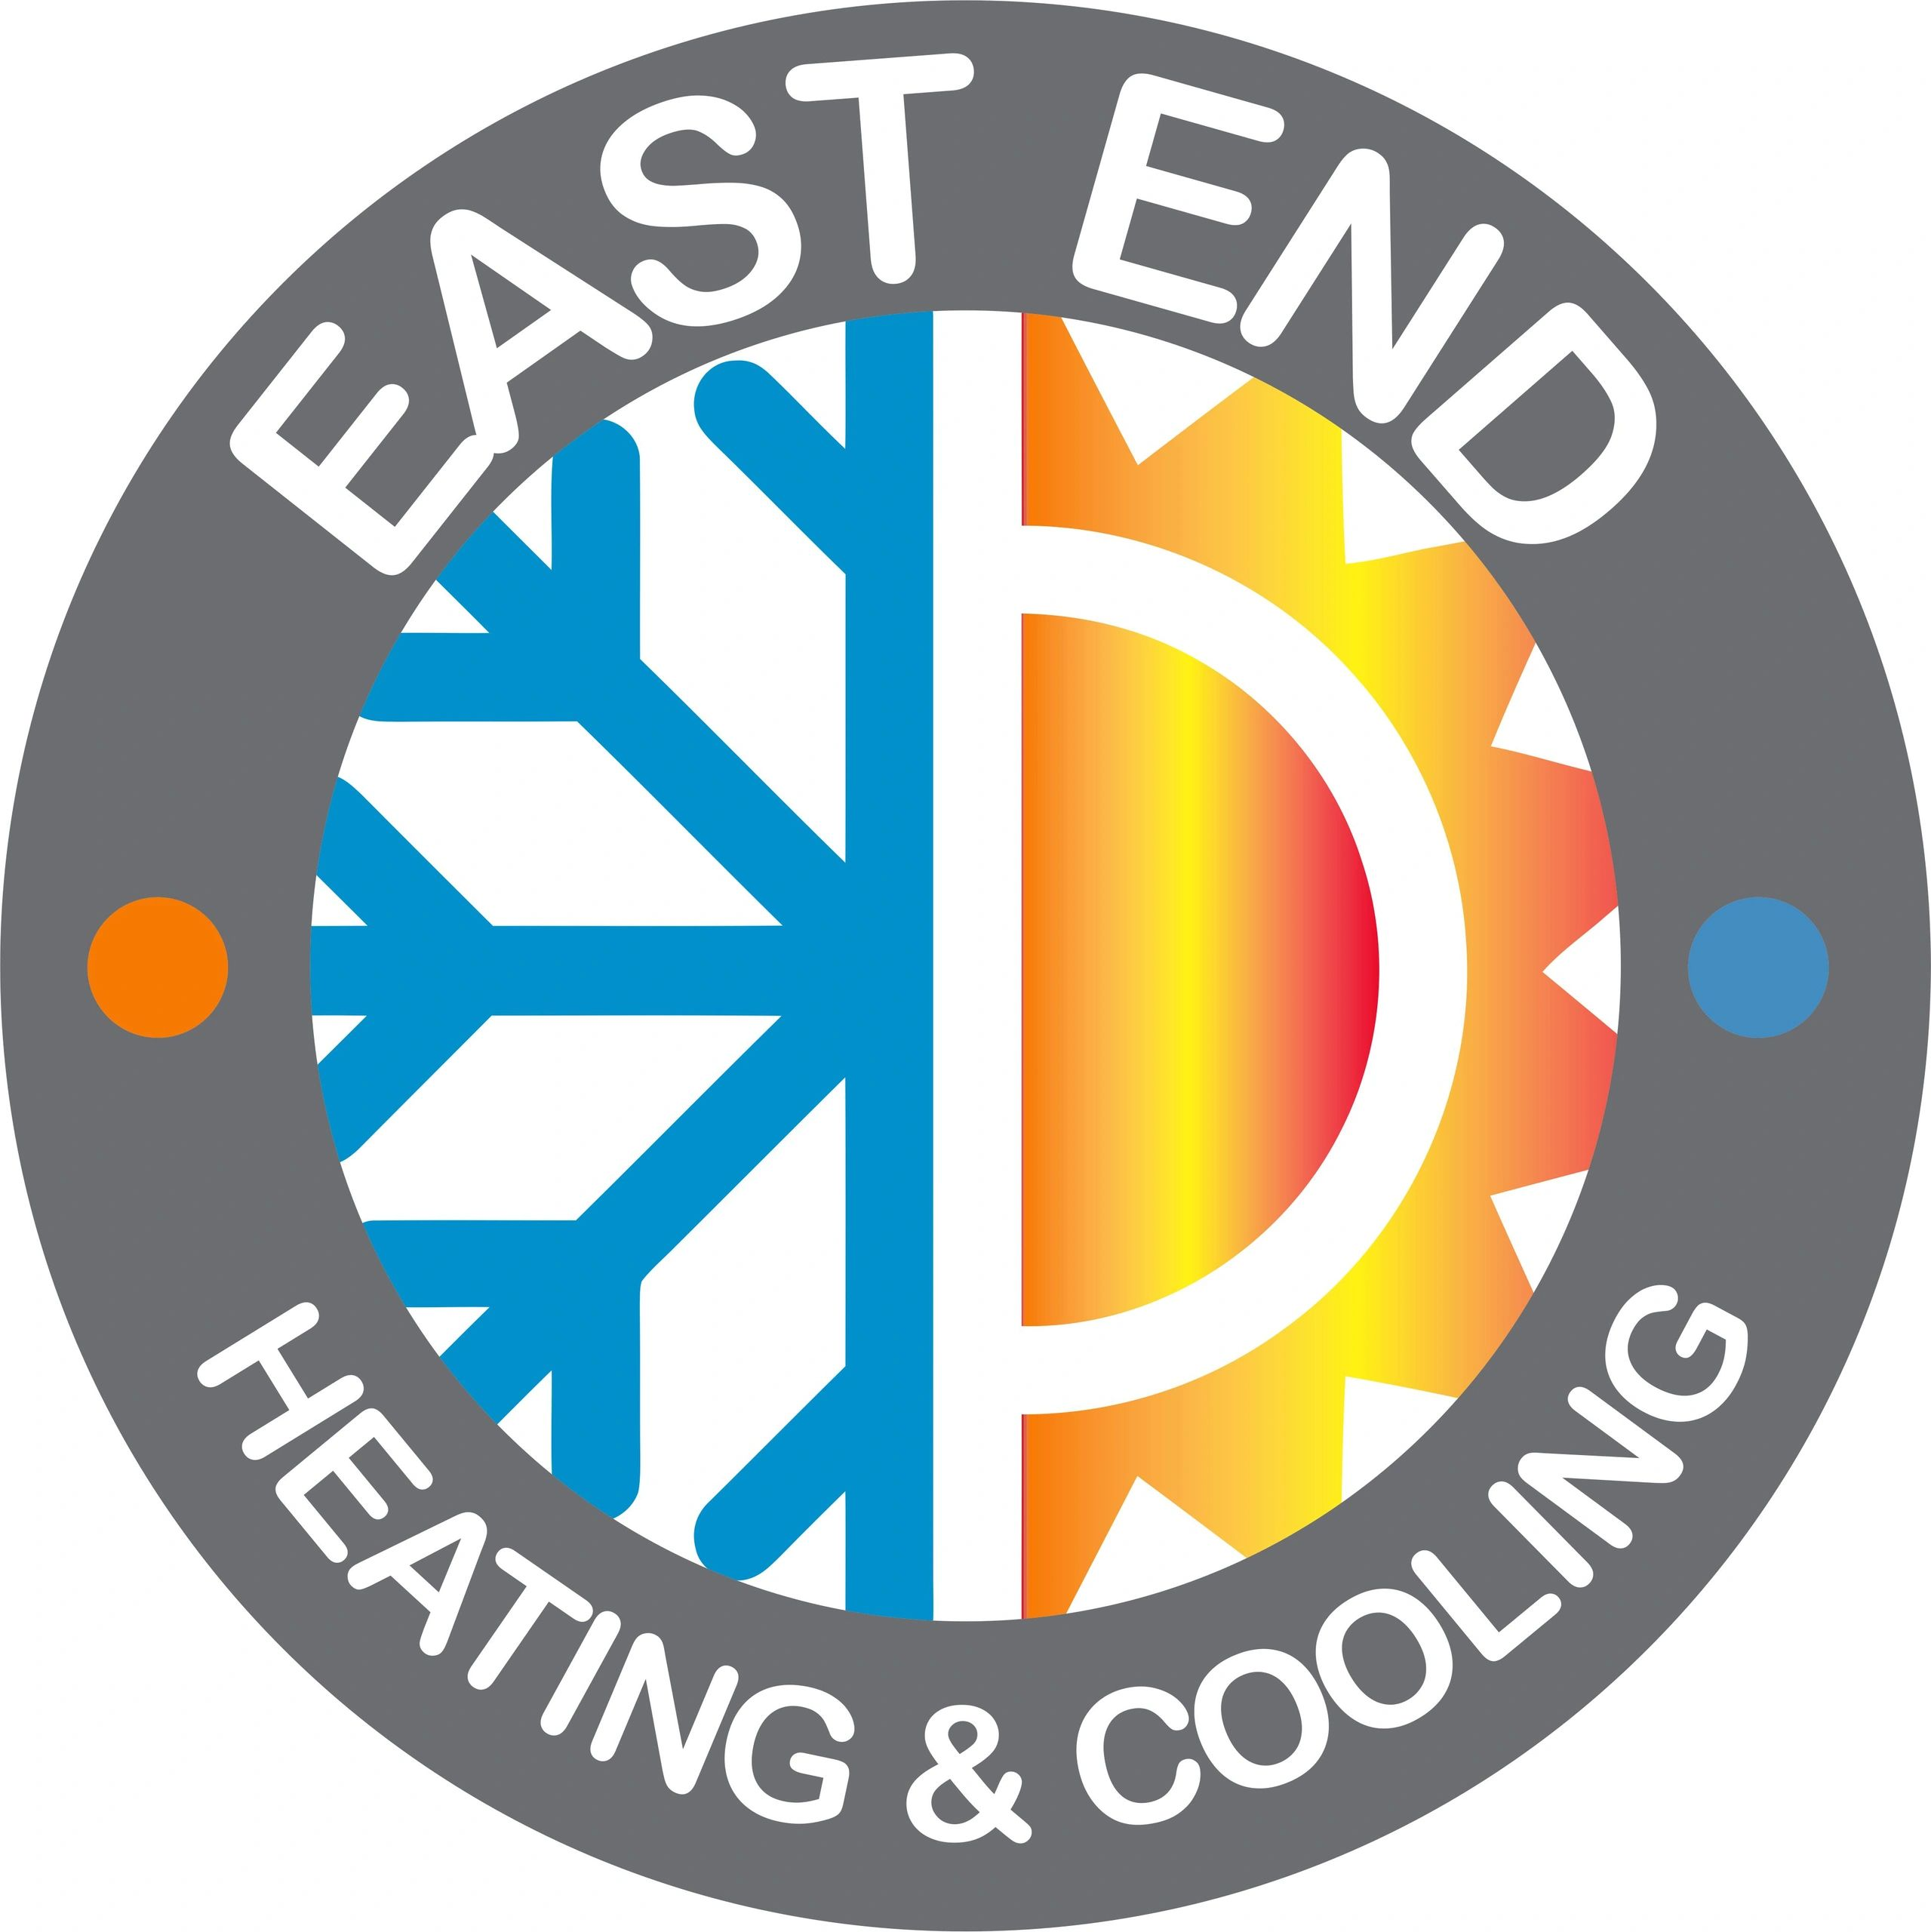 East End Heating & Cooling.